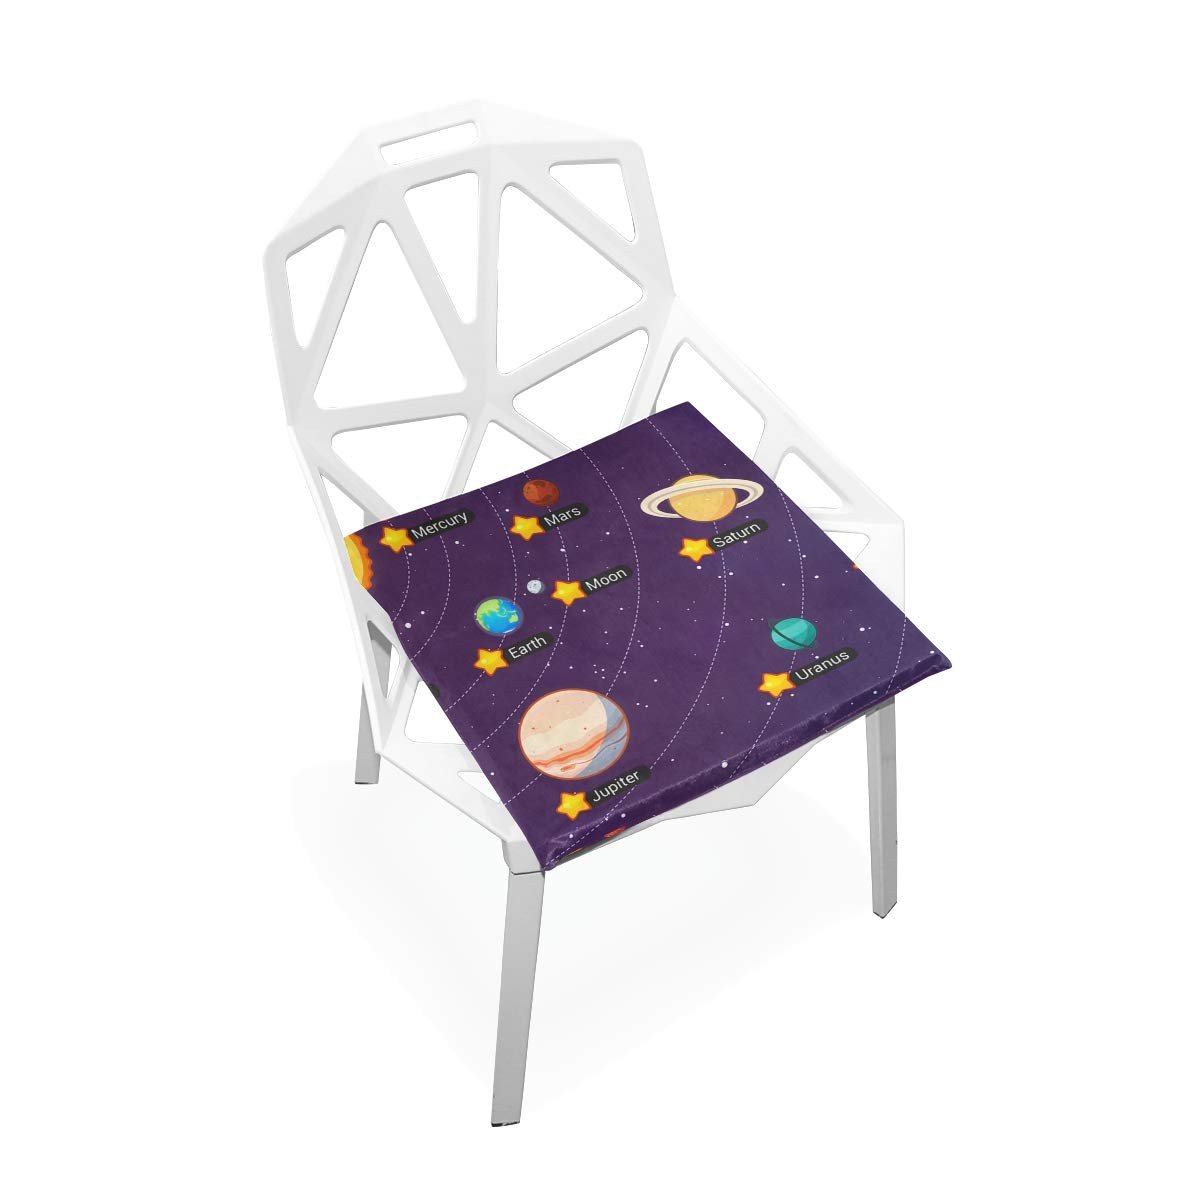 TSWEETHOME Comfort Memory Foam Square Chair Cushion Seat Cushion with Solar System All Planets Chair Pads for Floors Dining Office Chairs